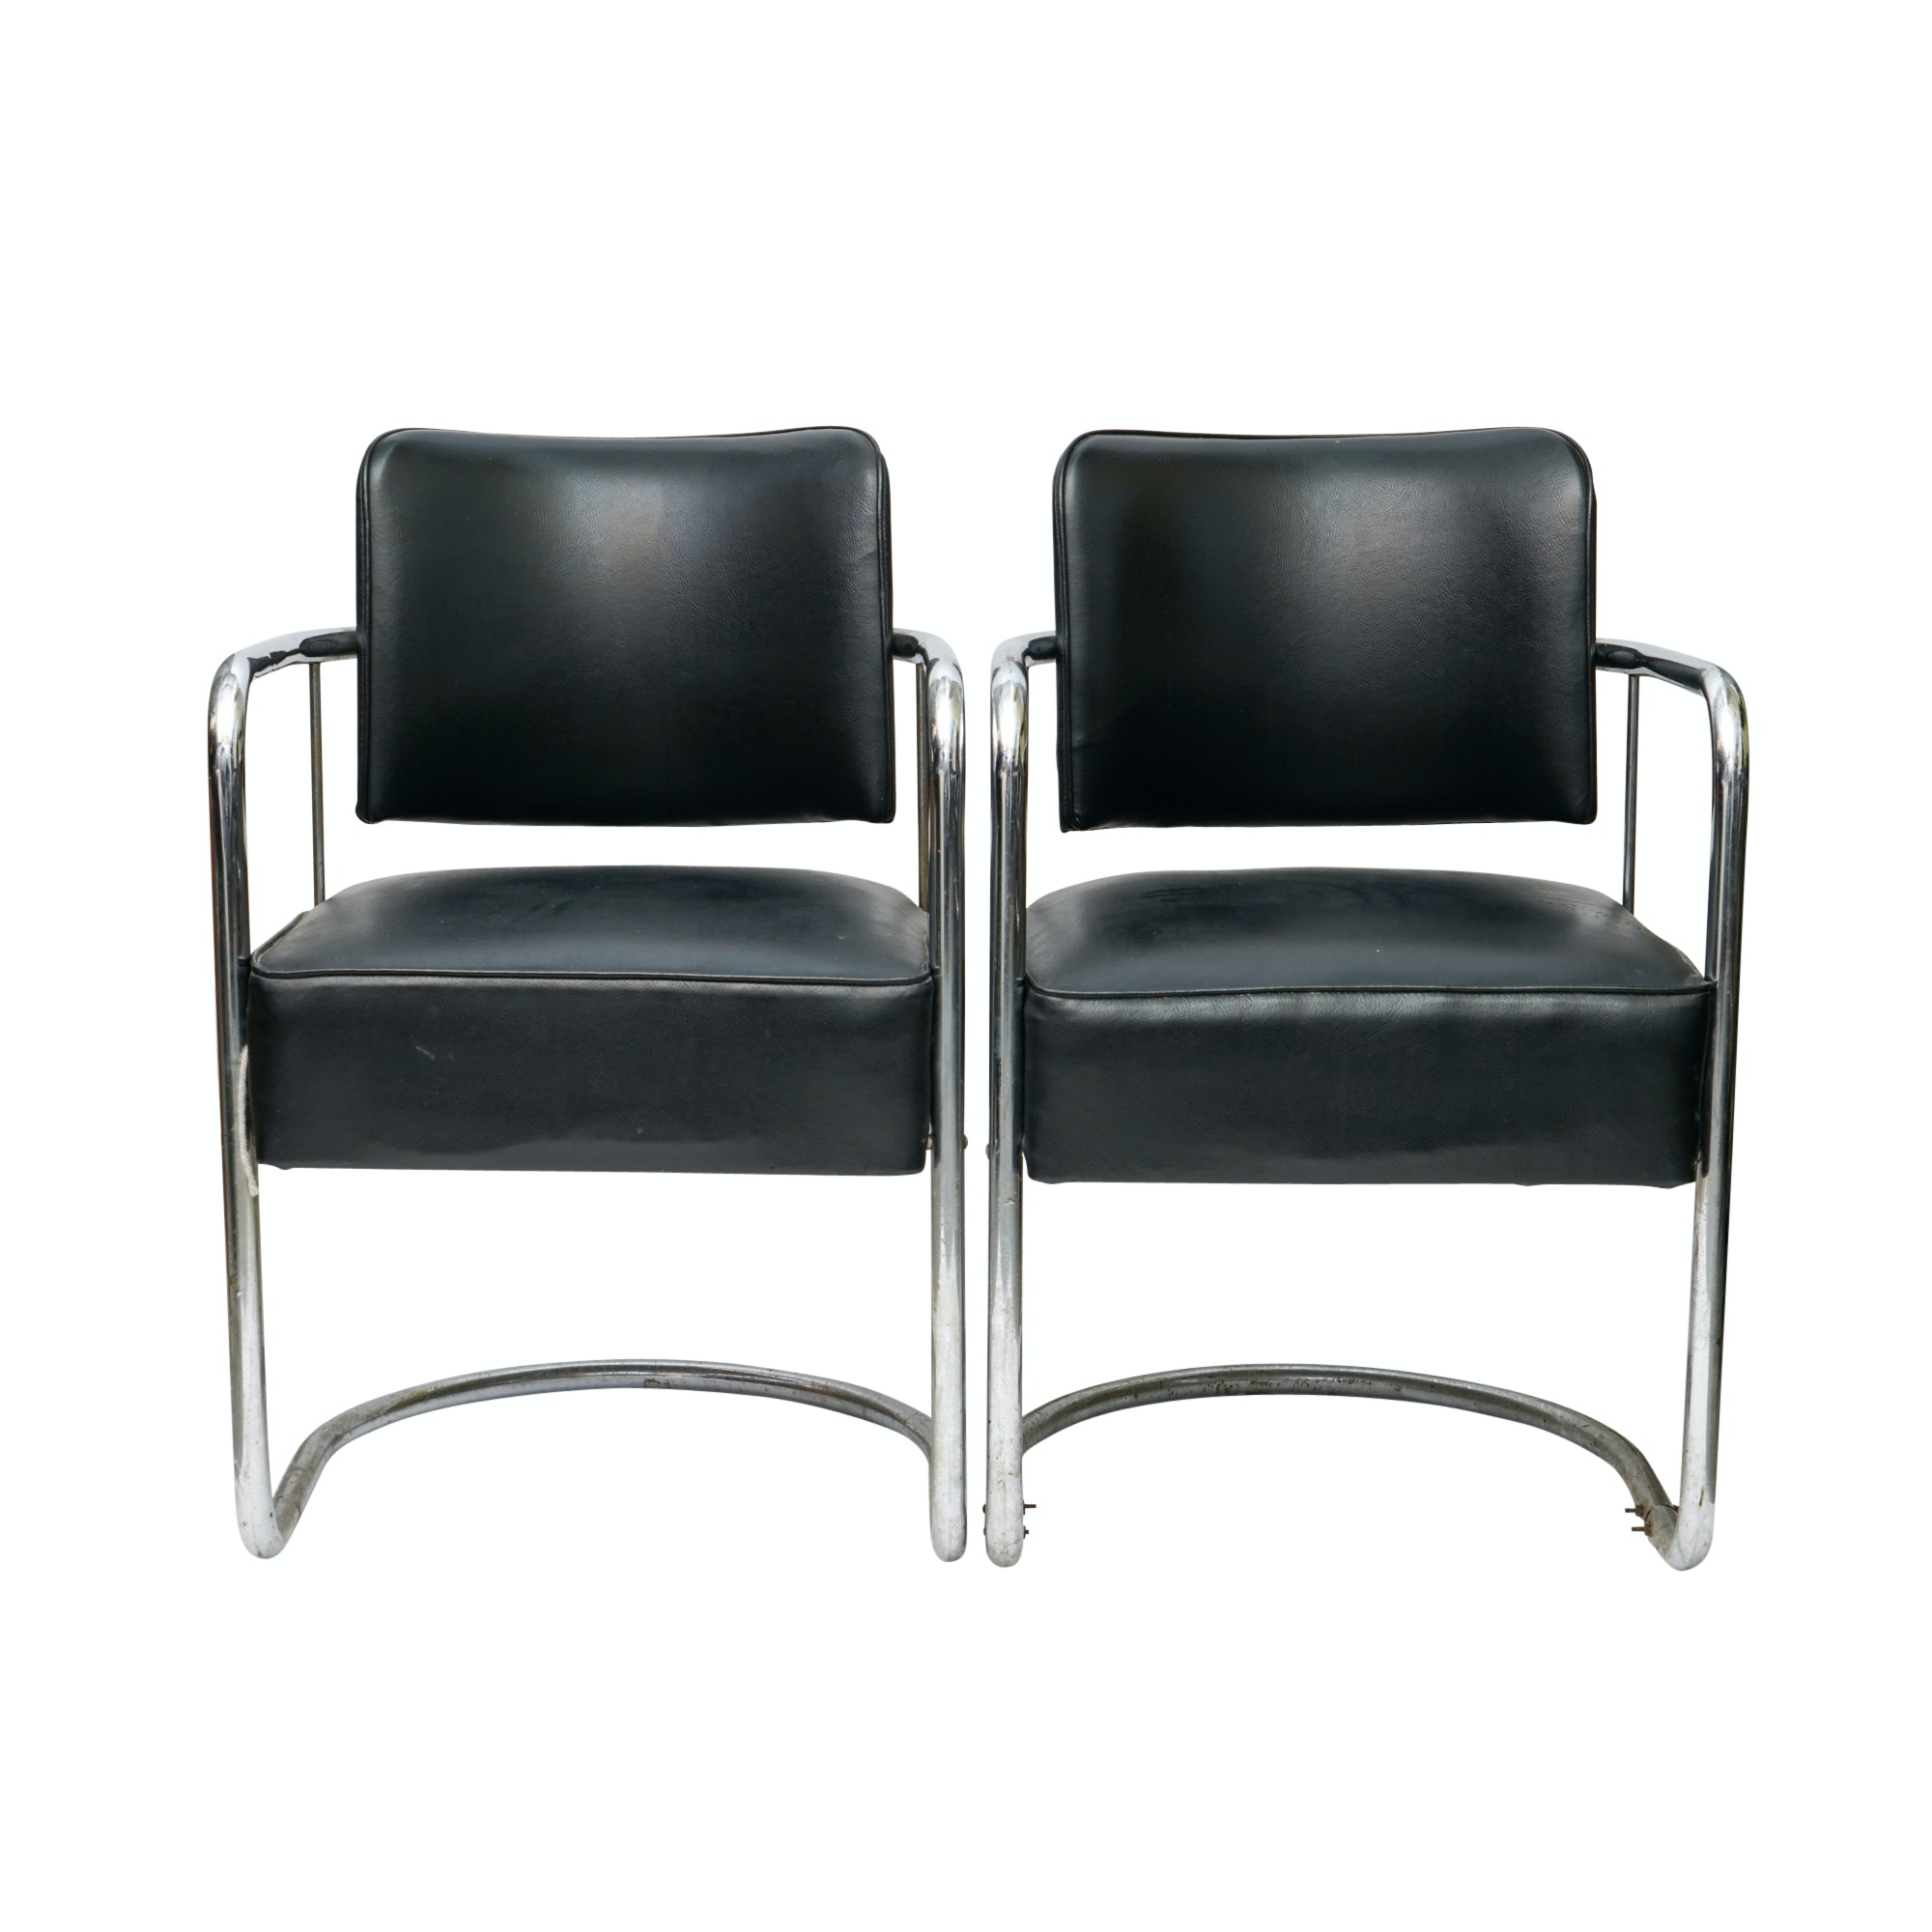 Pair of Art Deco Chromed Metal Cantilevered Armchairs